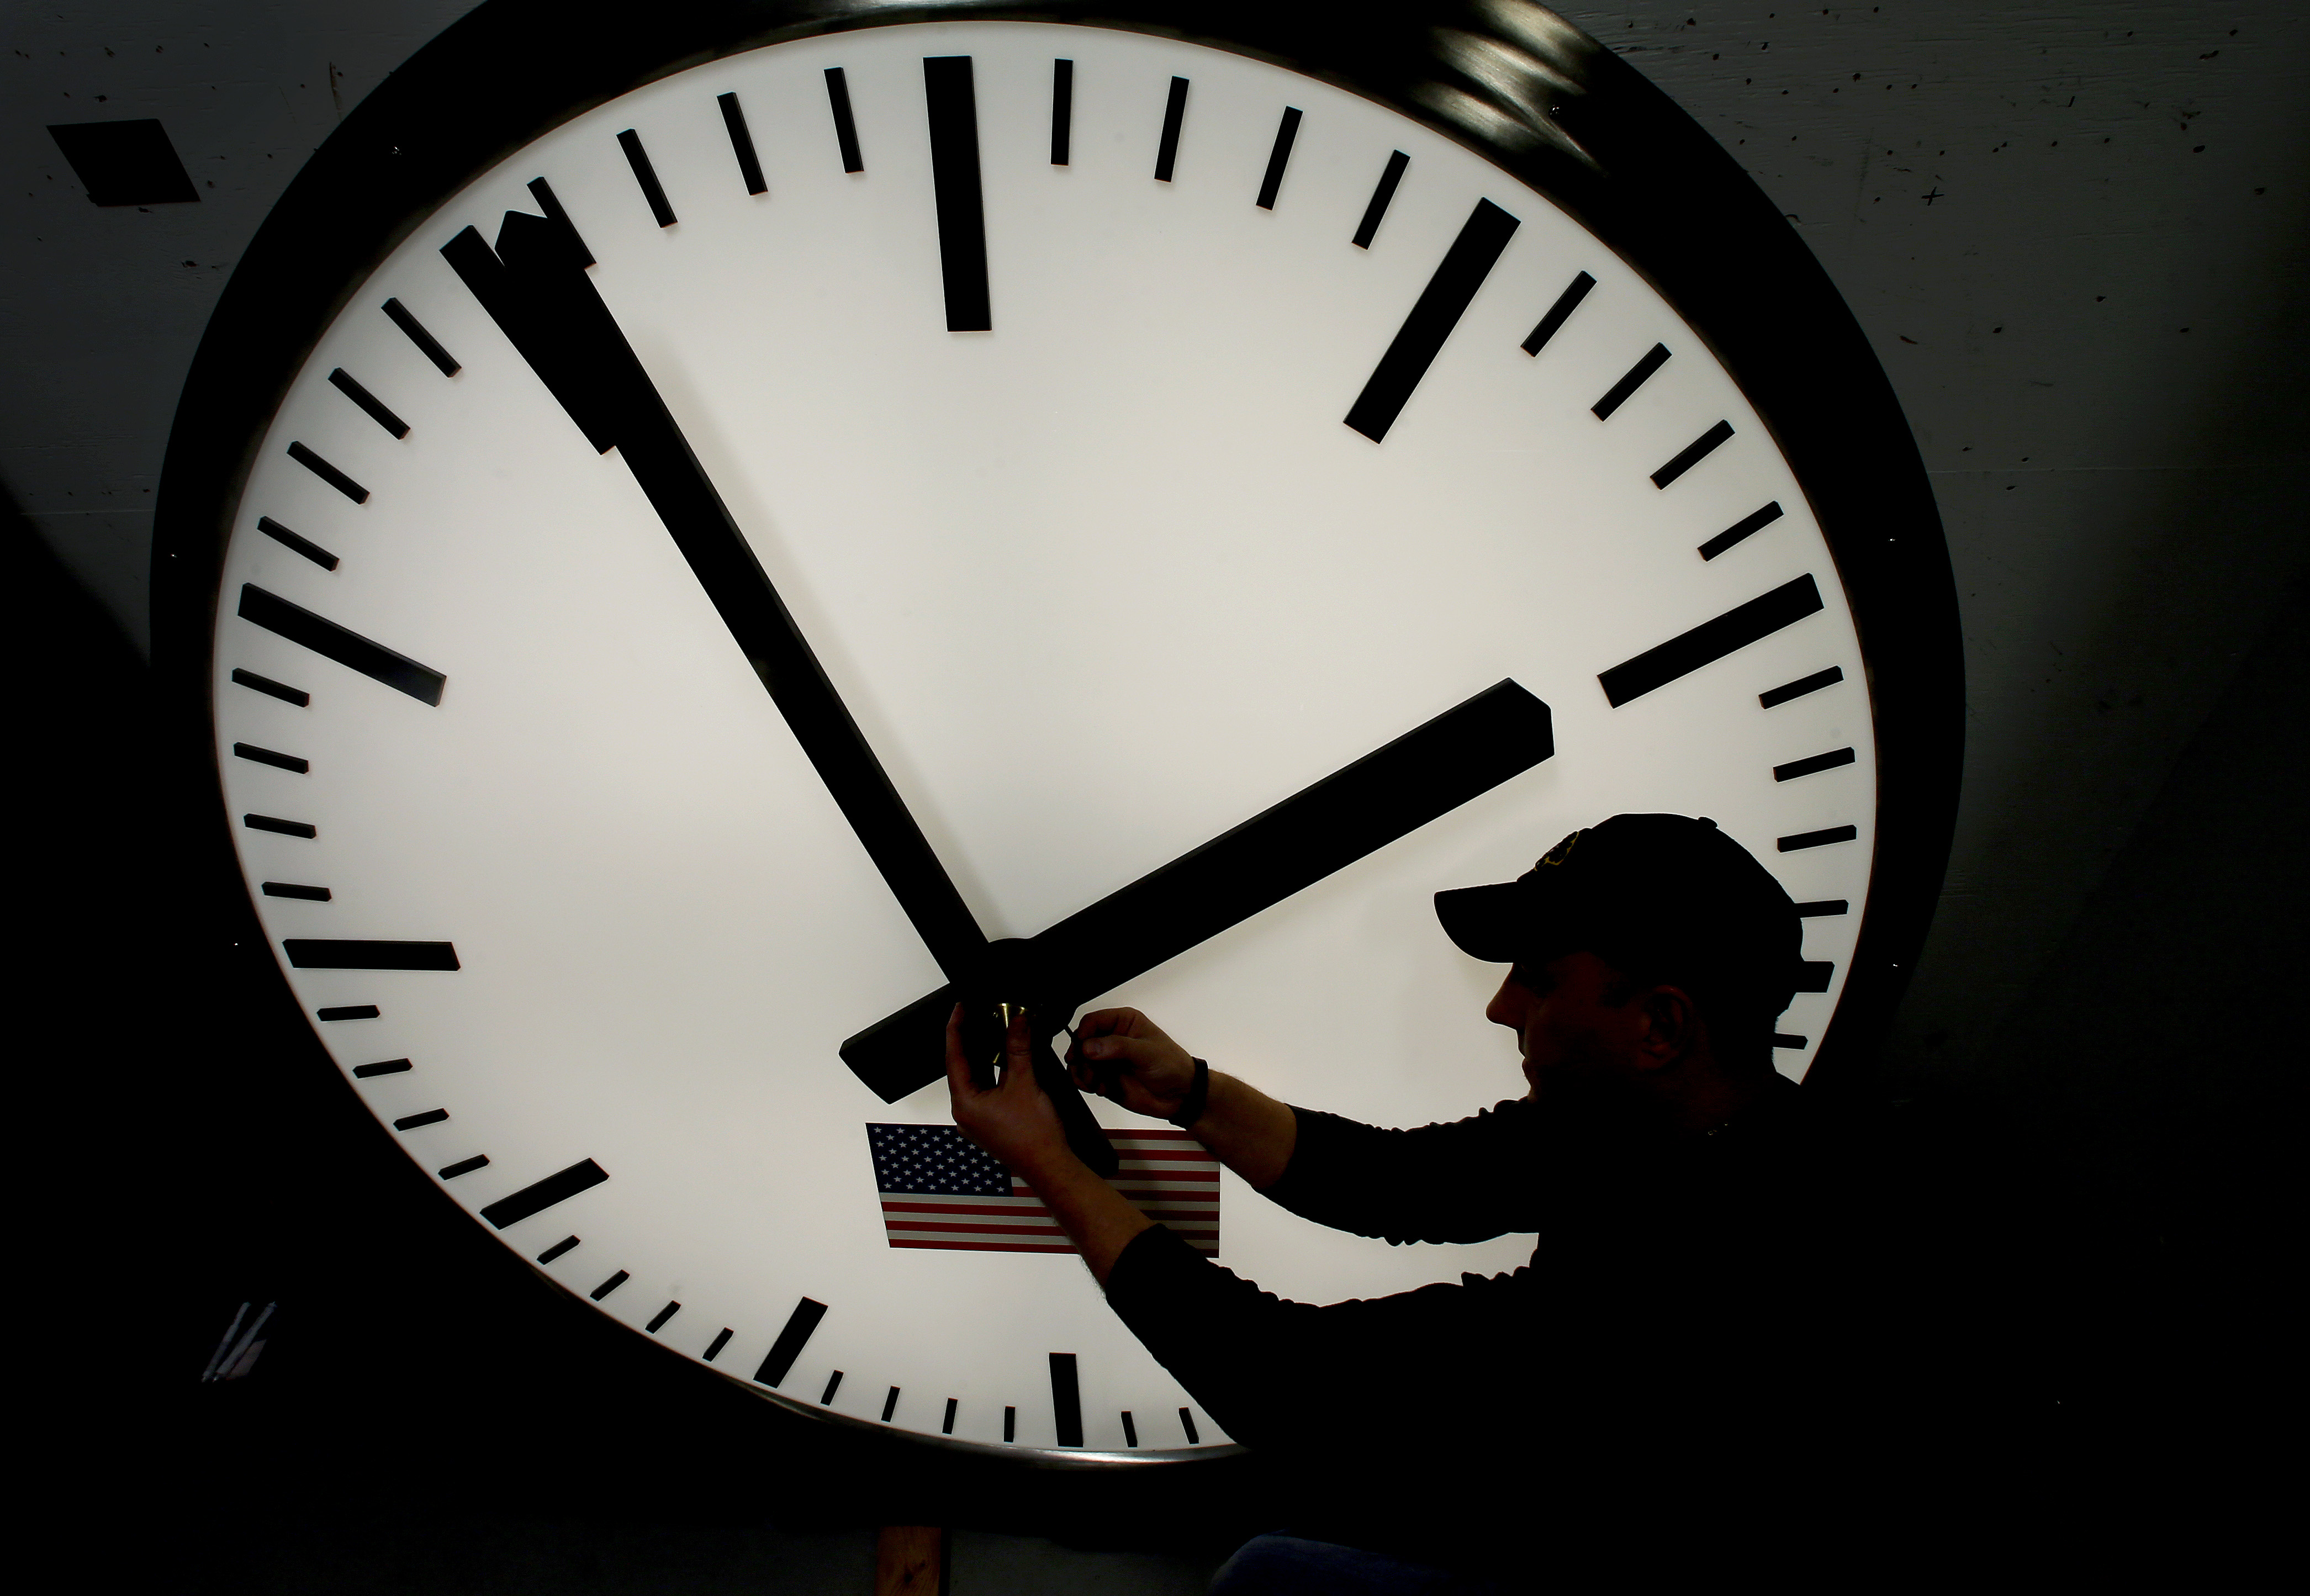 Photo: Clock, daylight savings time